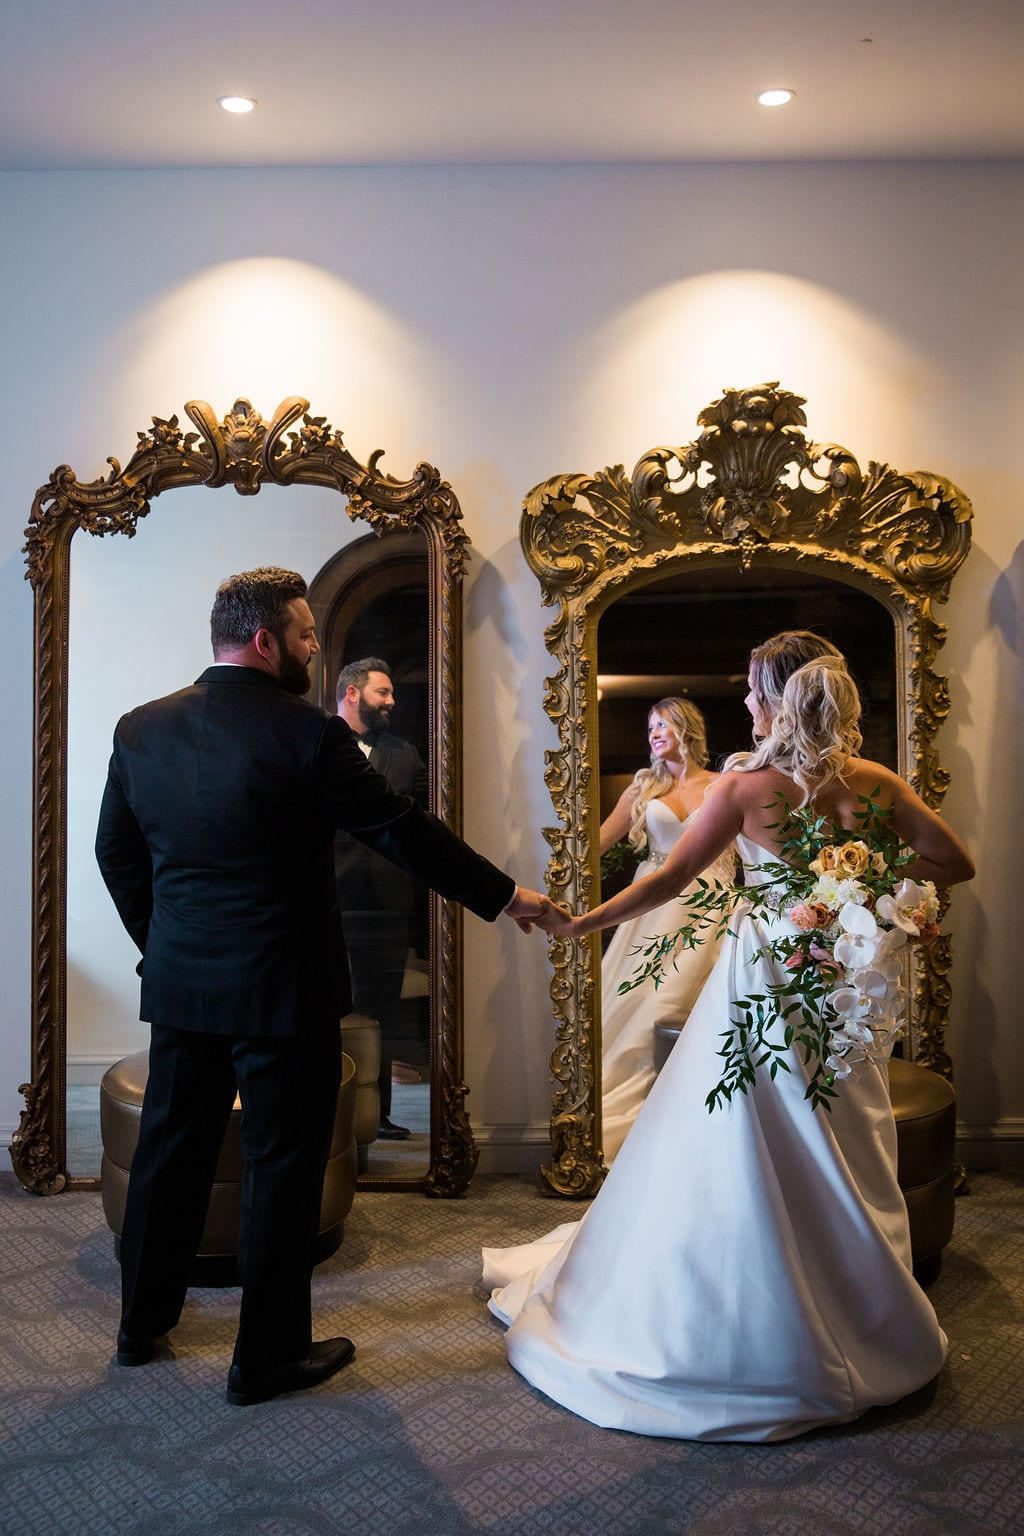 St Anthony Styled wedding groom and bride in mirror